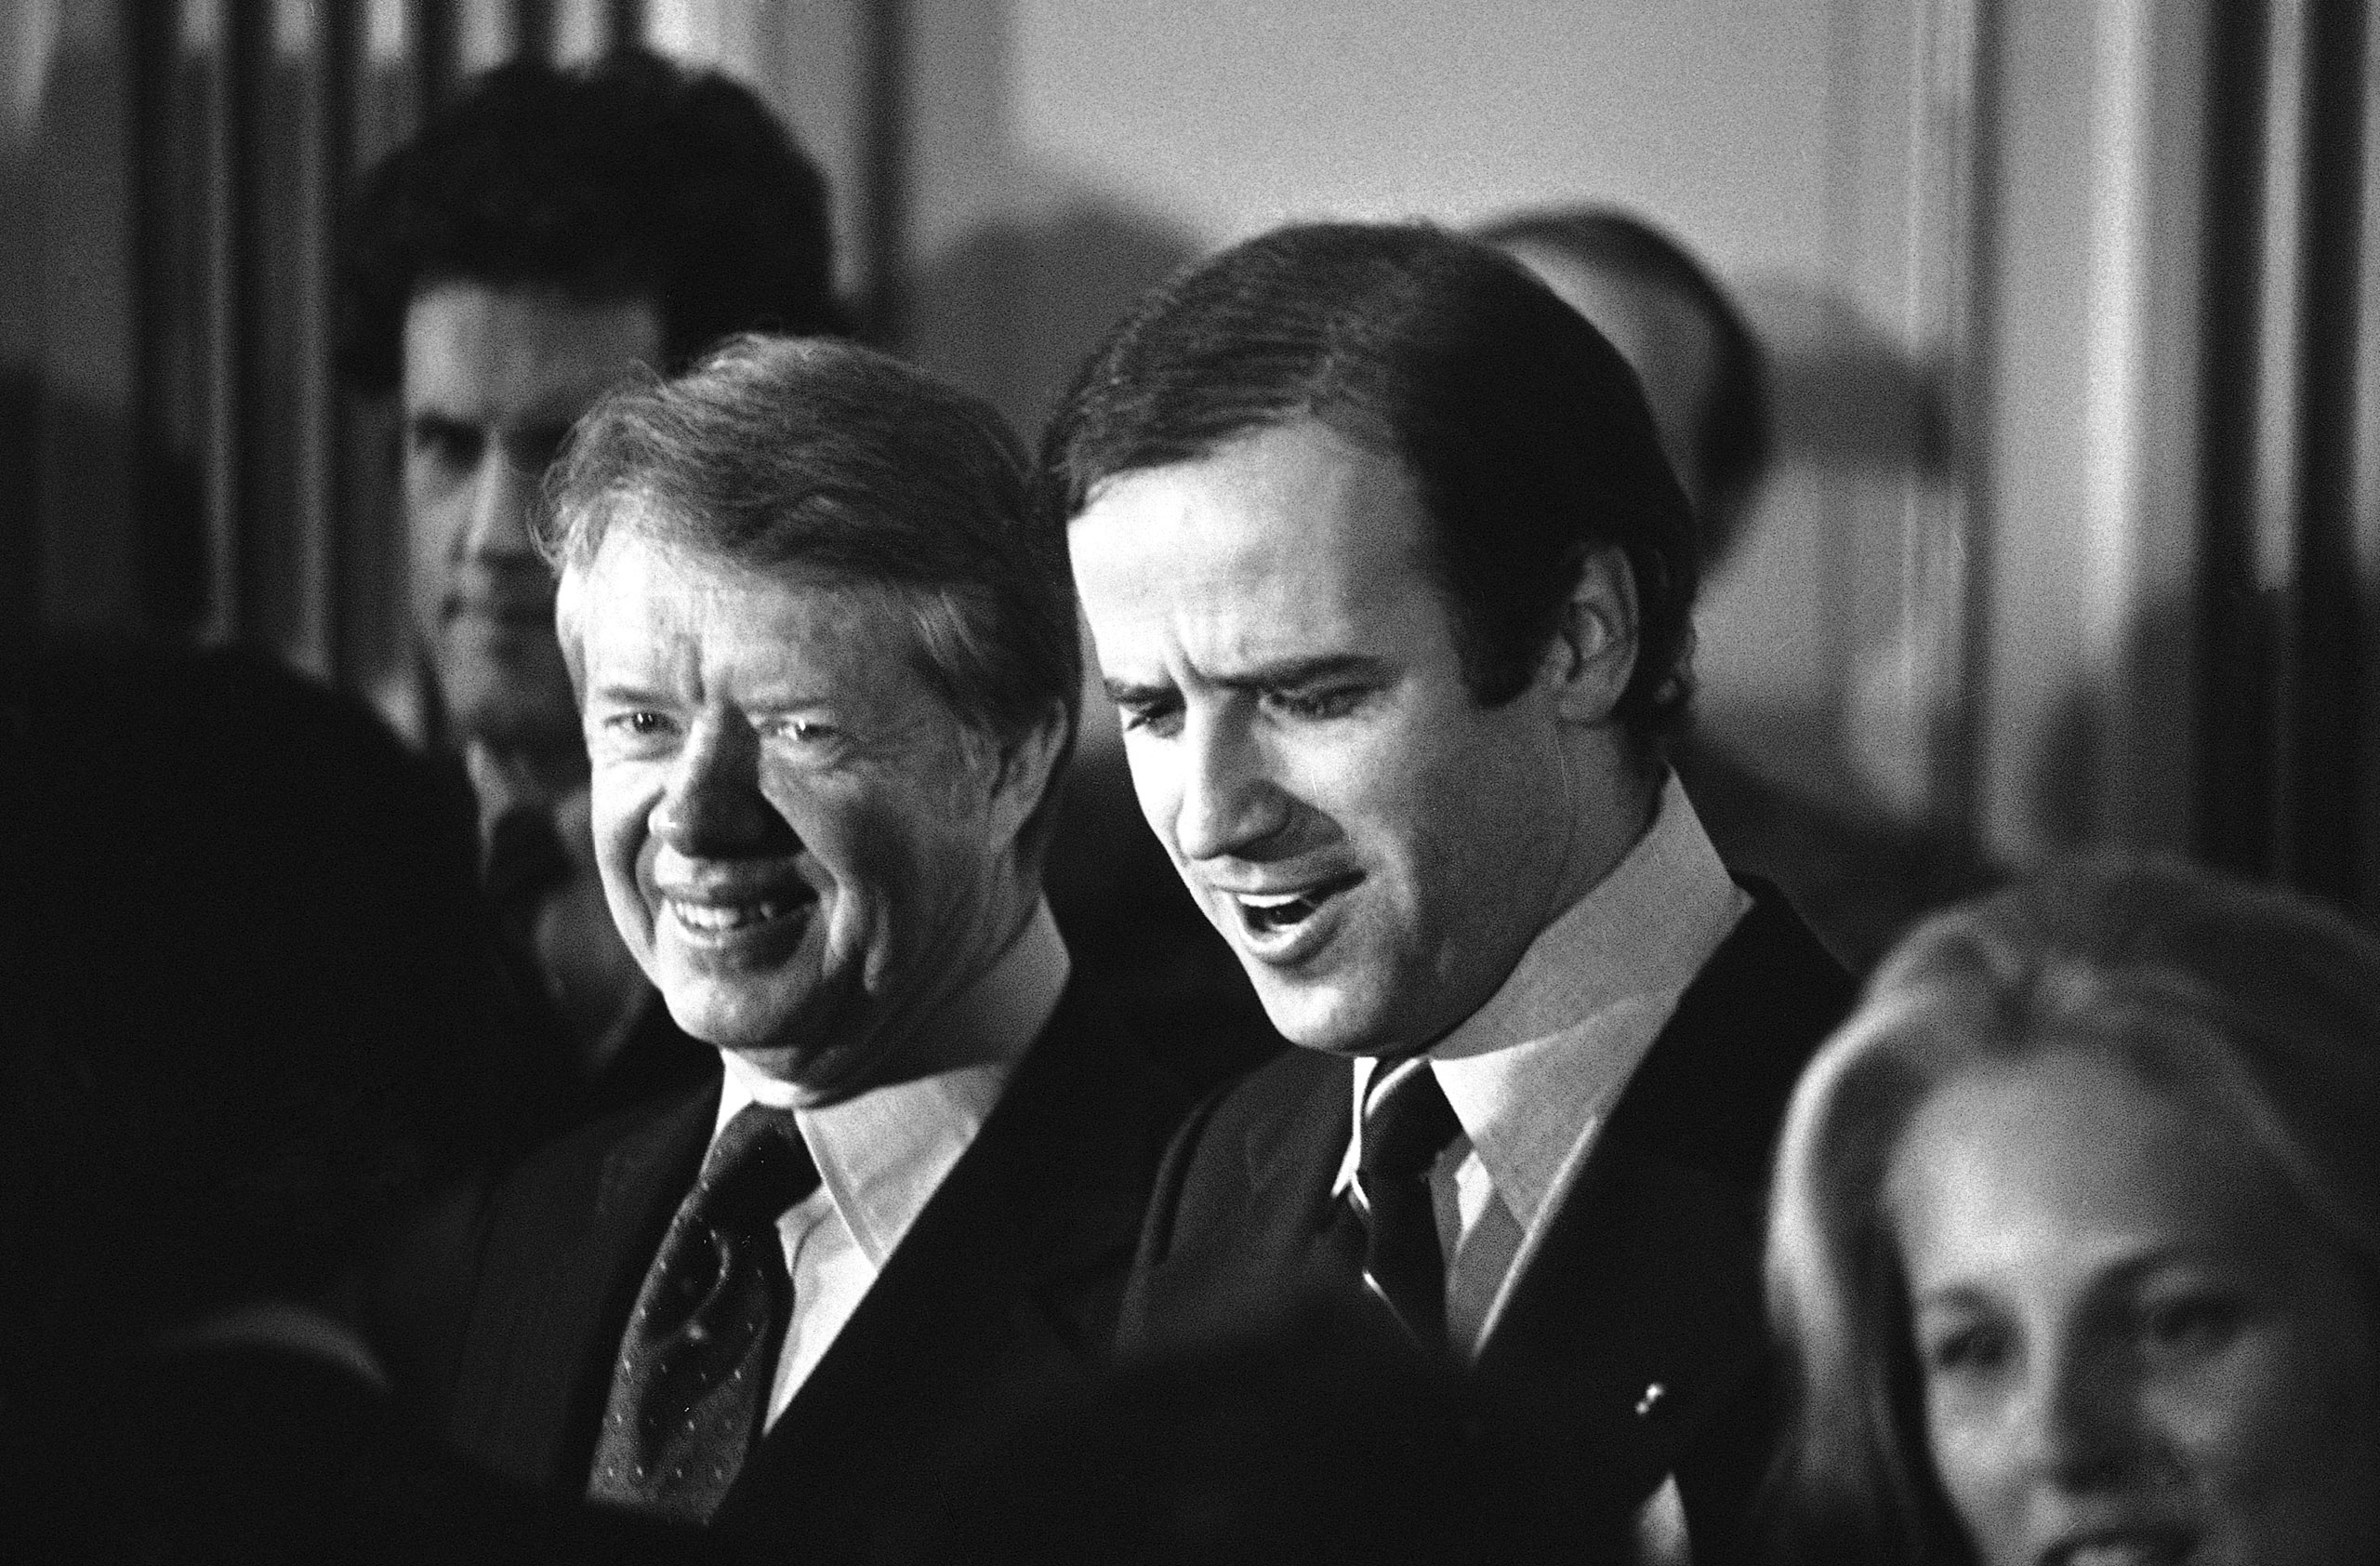 Jimmy Carter and Joe Biden at a fund raising reception in Wilmington, Del., on Feb. 20, 1978.